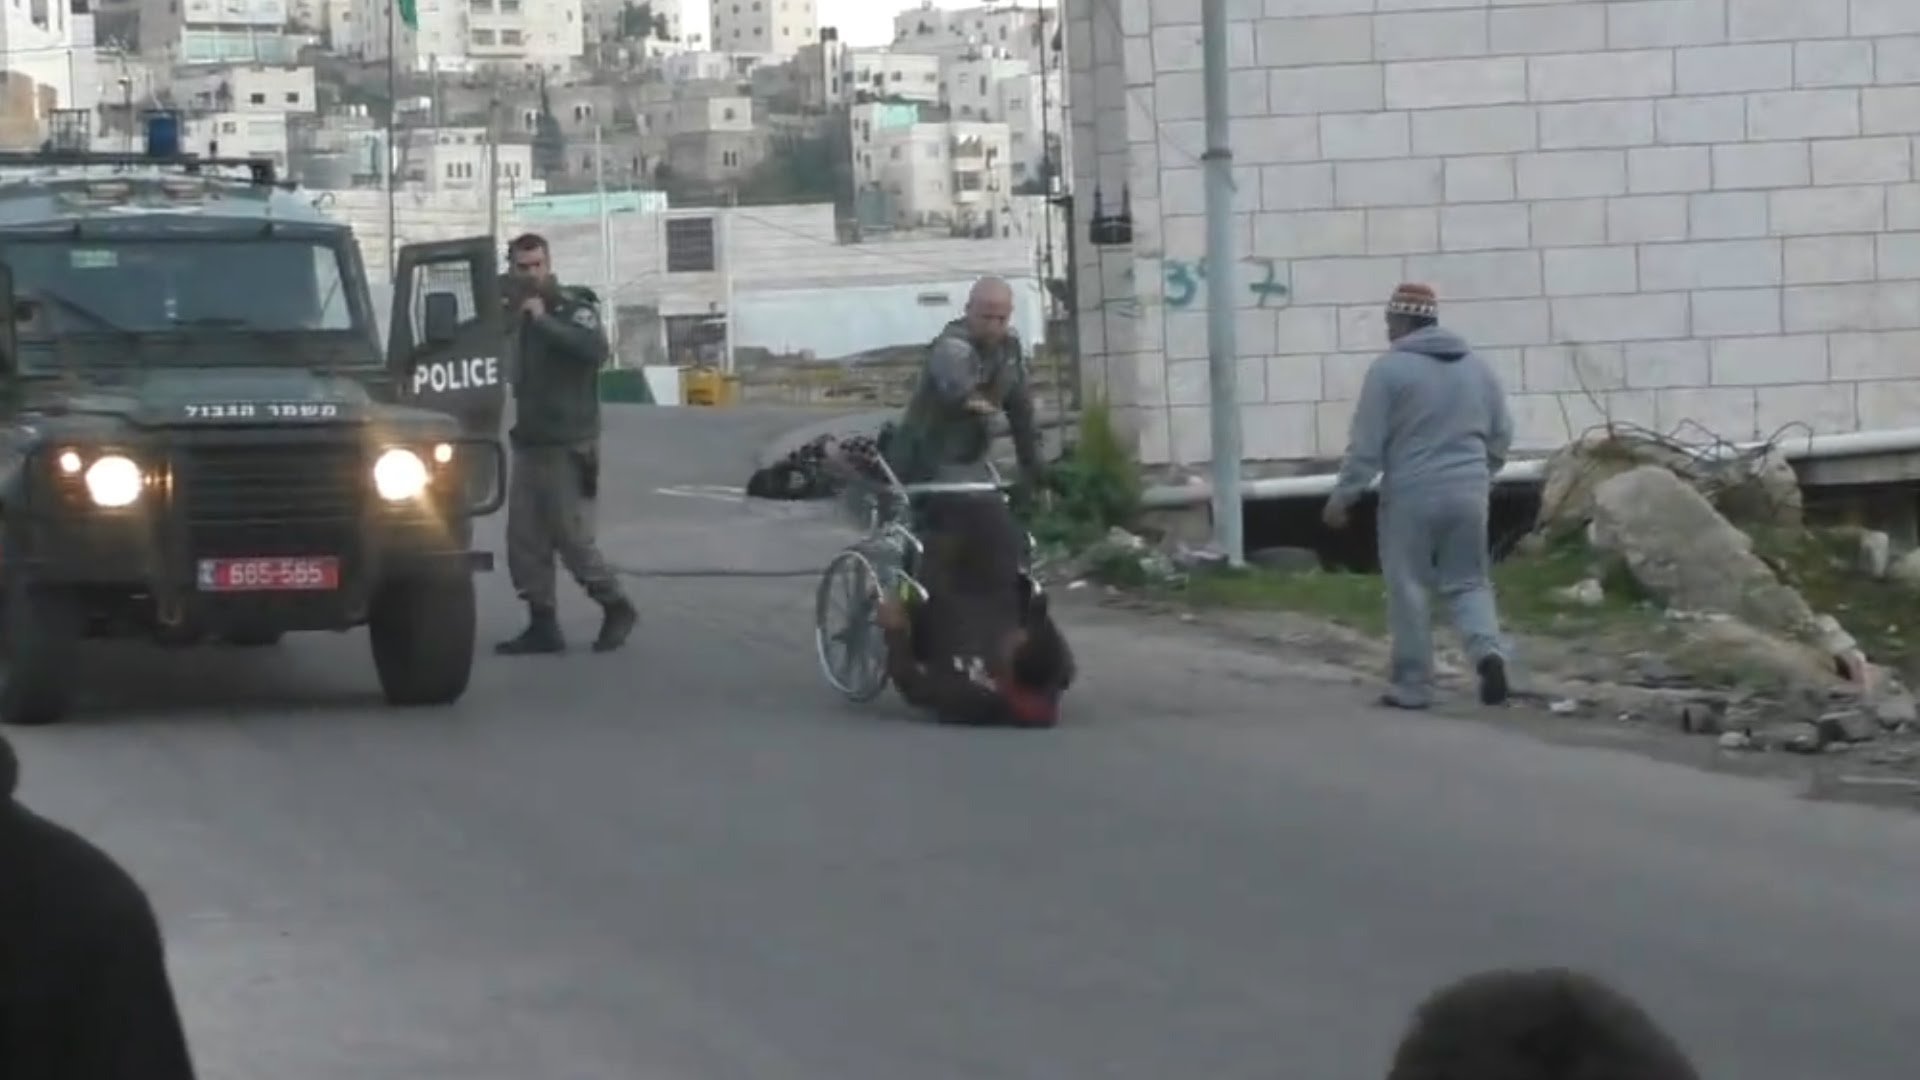 Israeli Border Police Officer Flips Over Man In Wheelchair